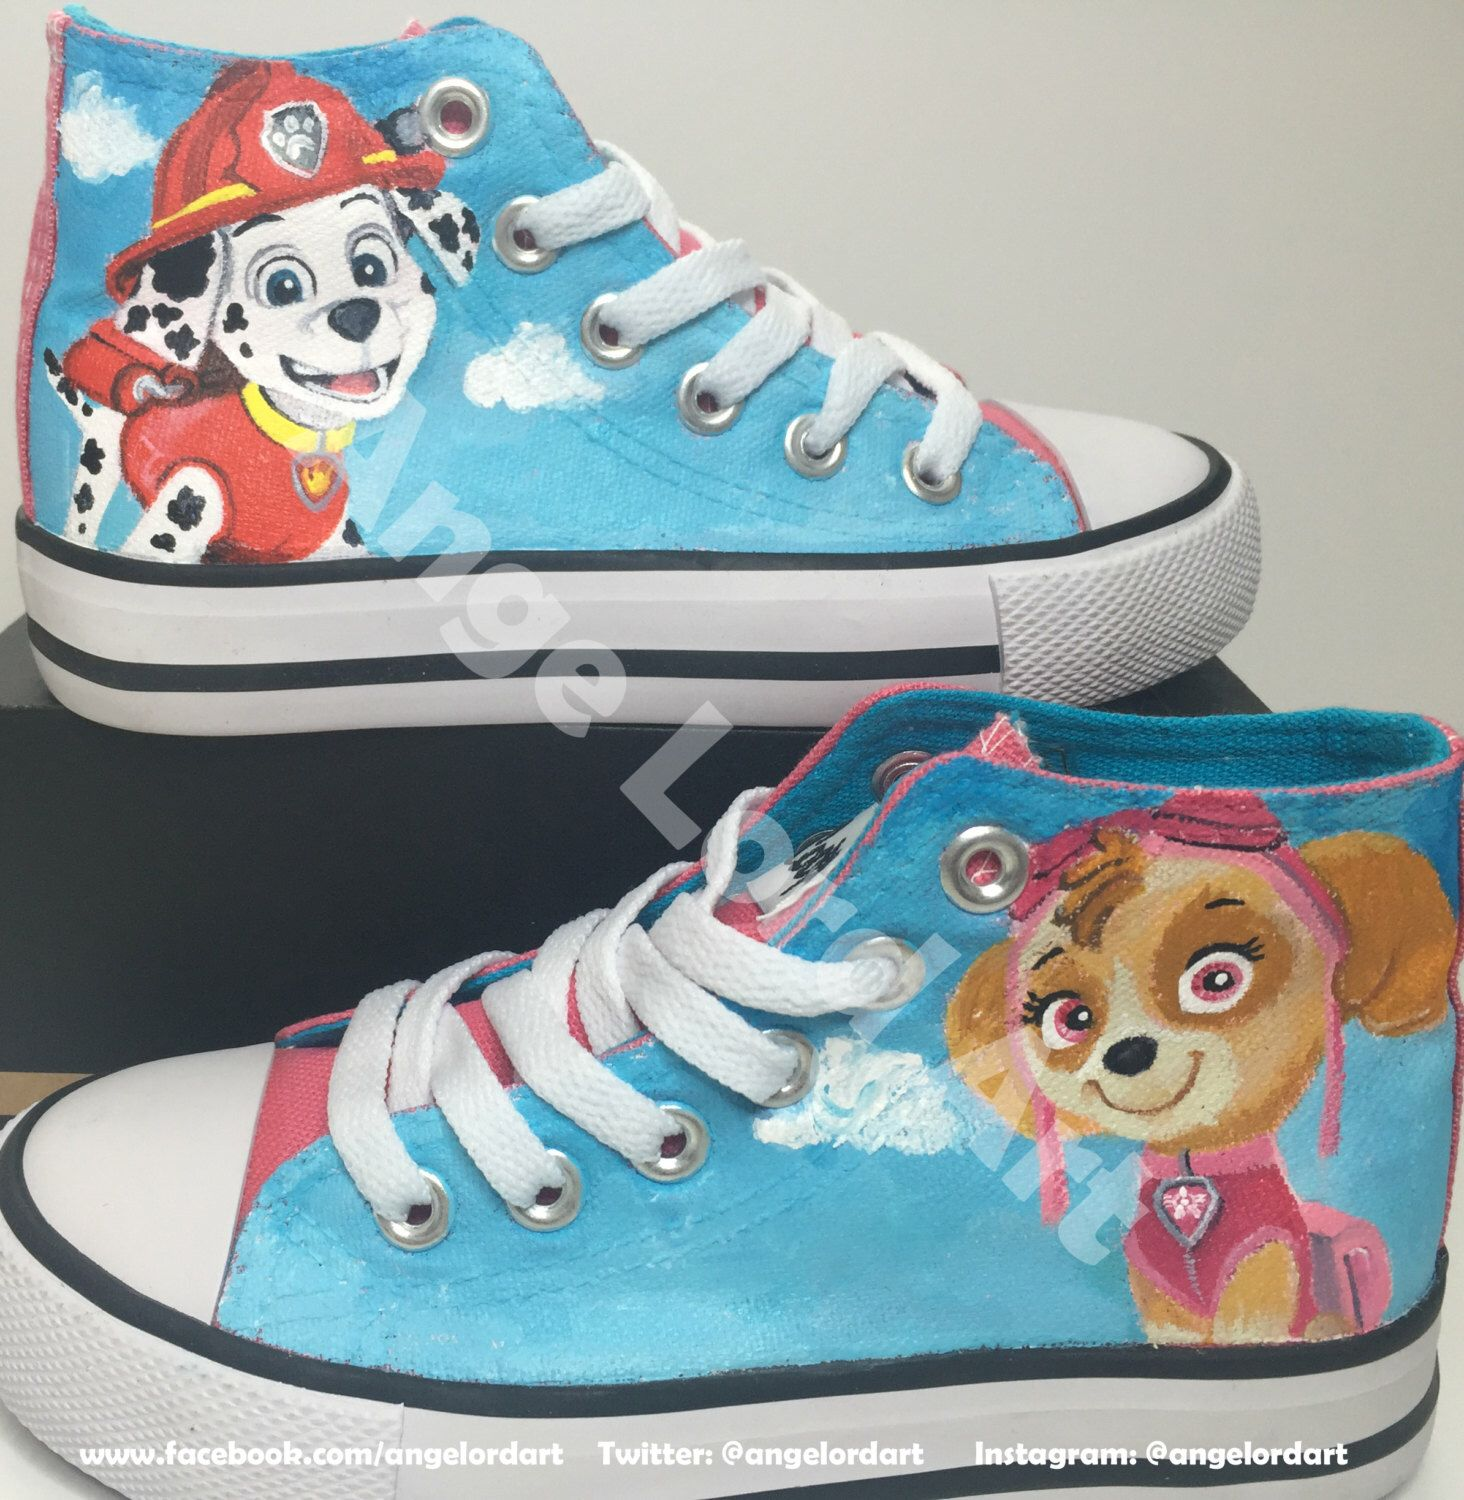 Walking dead converse shoes for sale - Custom Painted Paw Patrol Converse Hi Tops Shoes Sneakers All Toddler